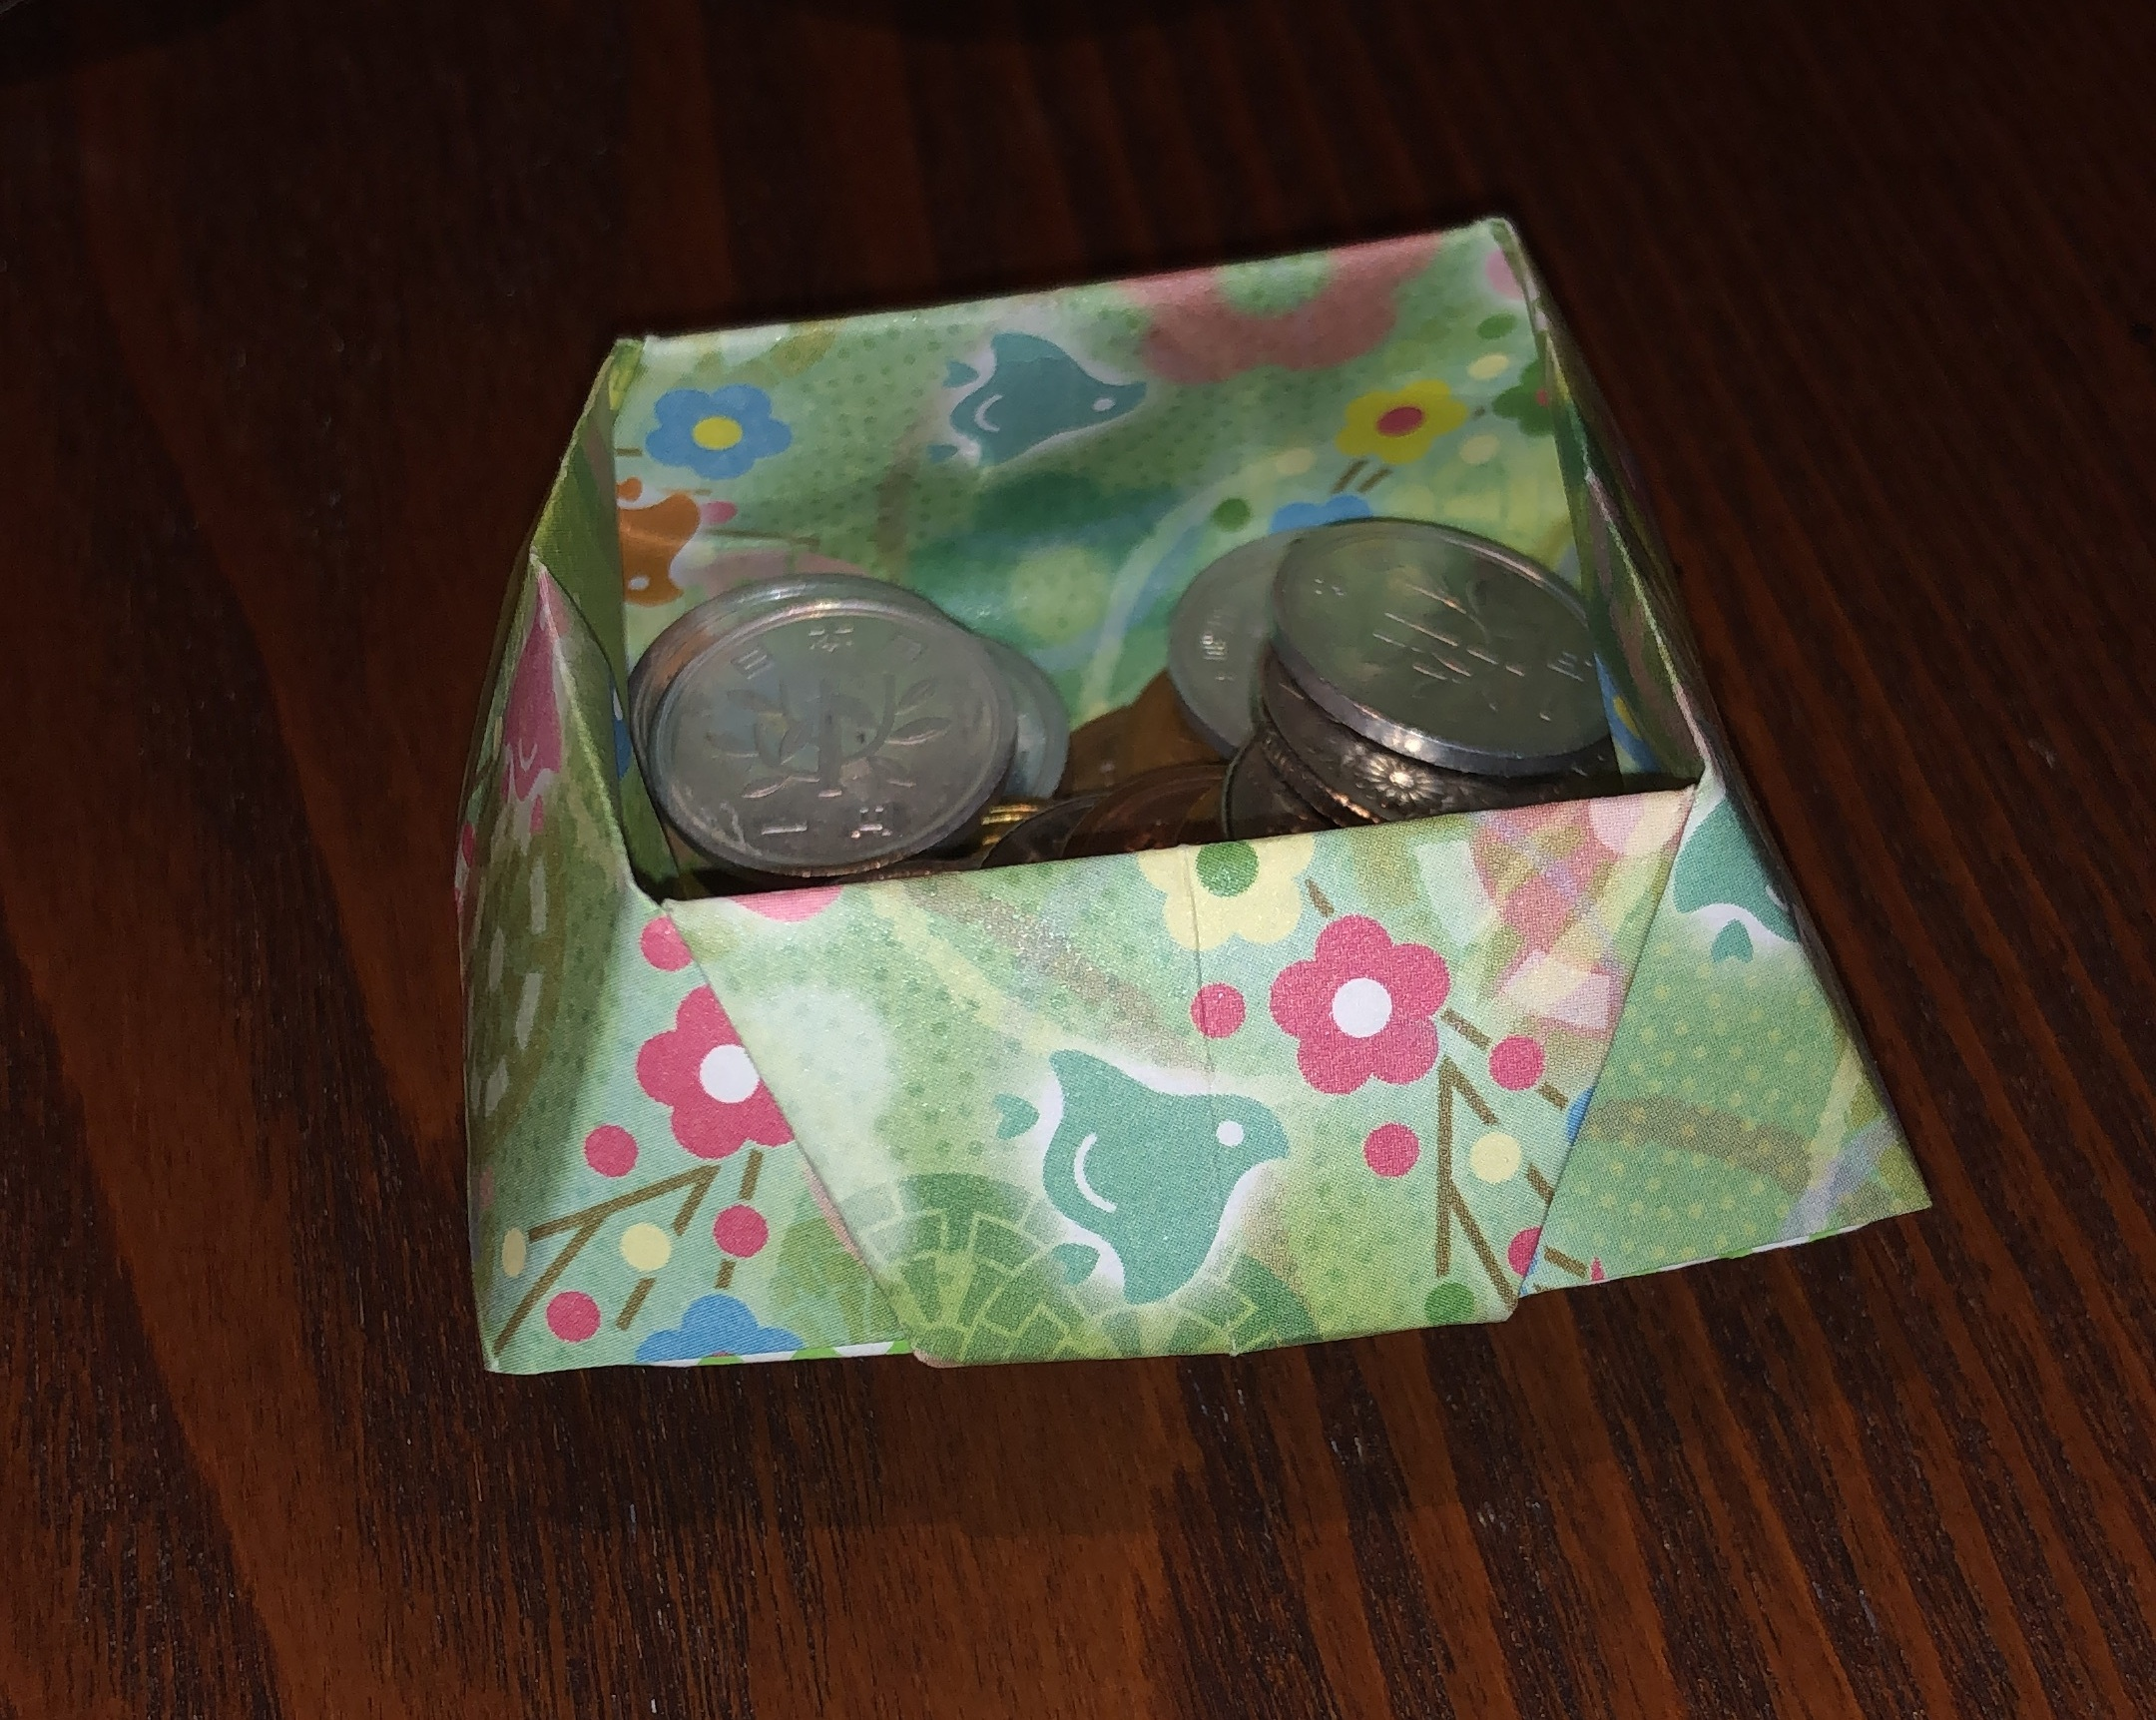 Origami coin holder